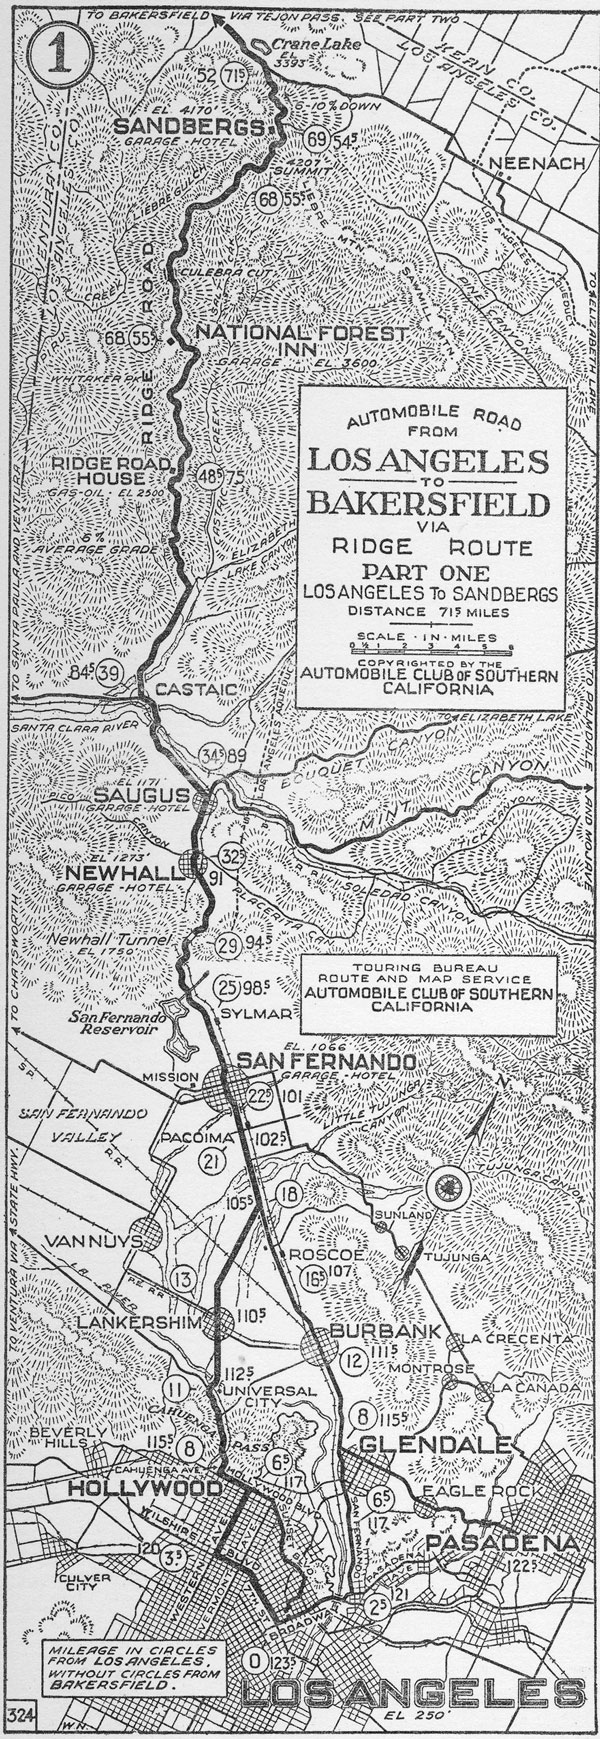 1924 Auto Club map of the Ridge Route. Courtesy of the Automobile Club of Southern California Archives and accessible through the USC Digital Library.